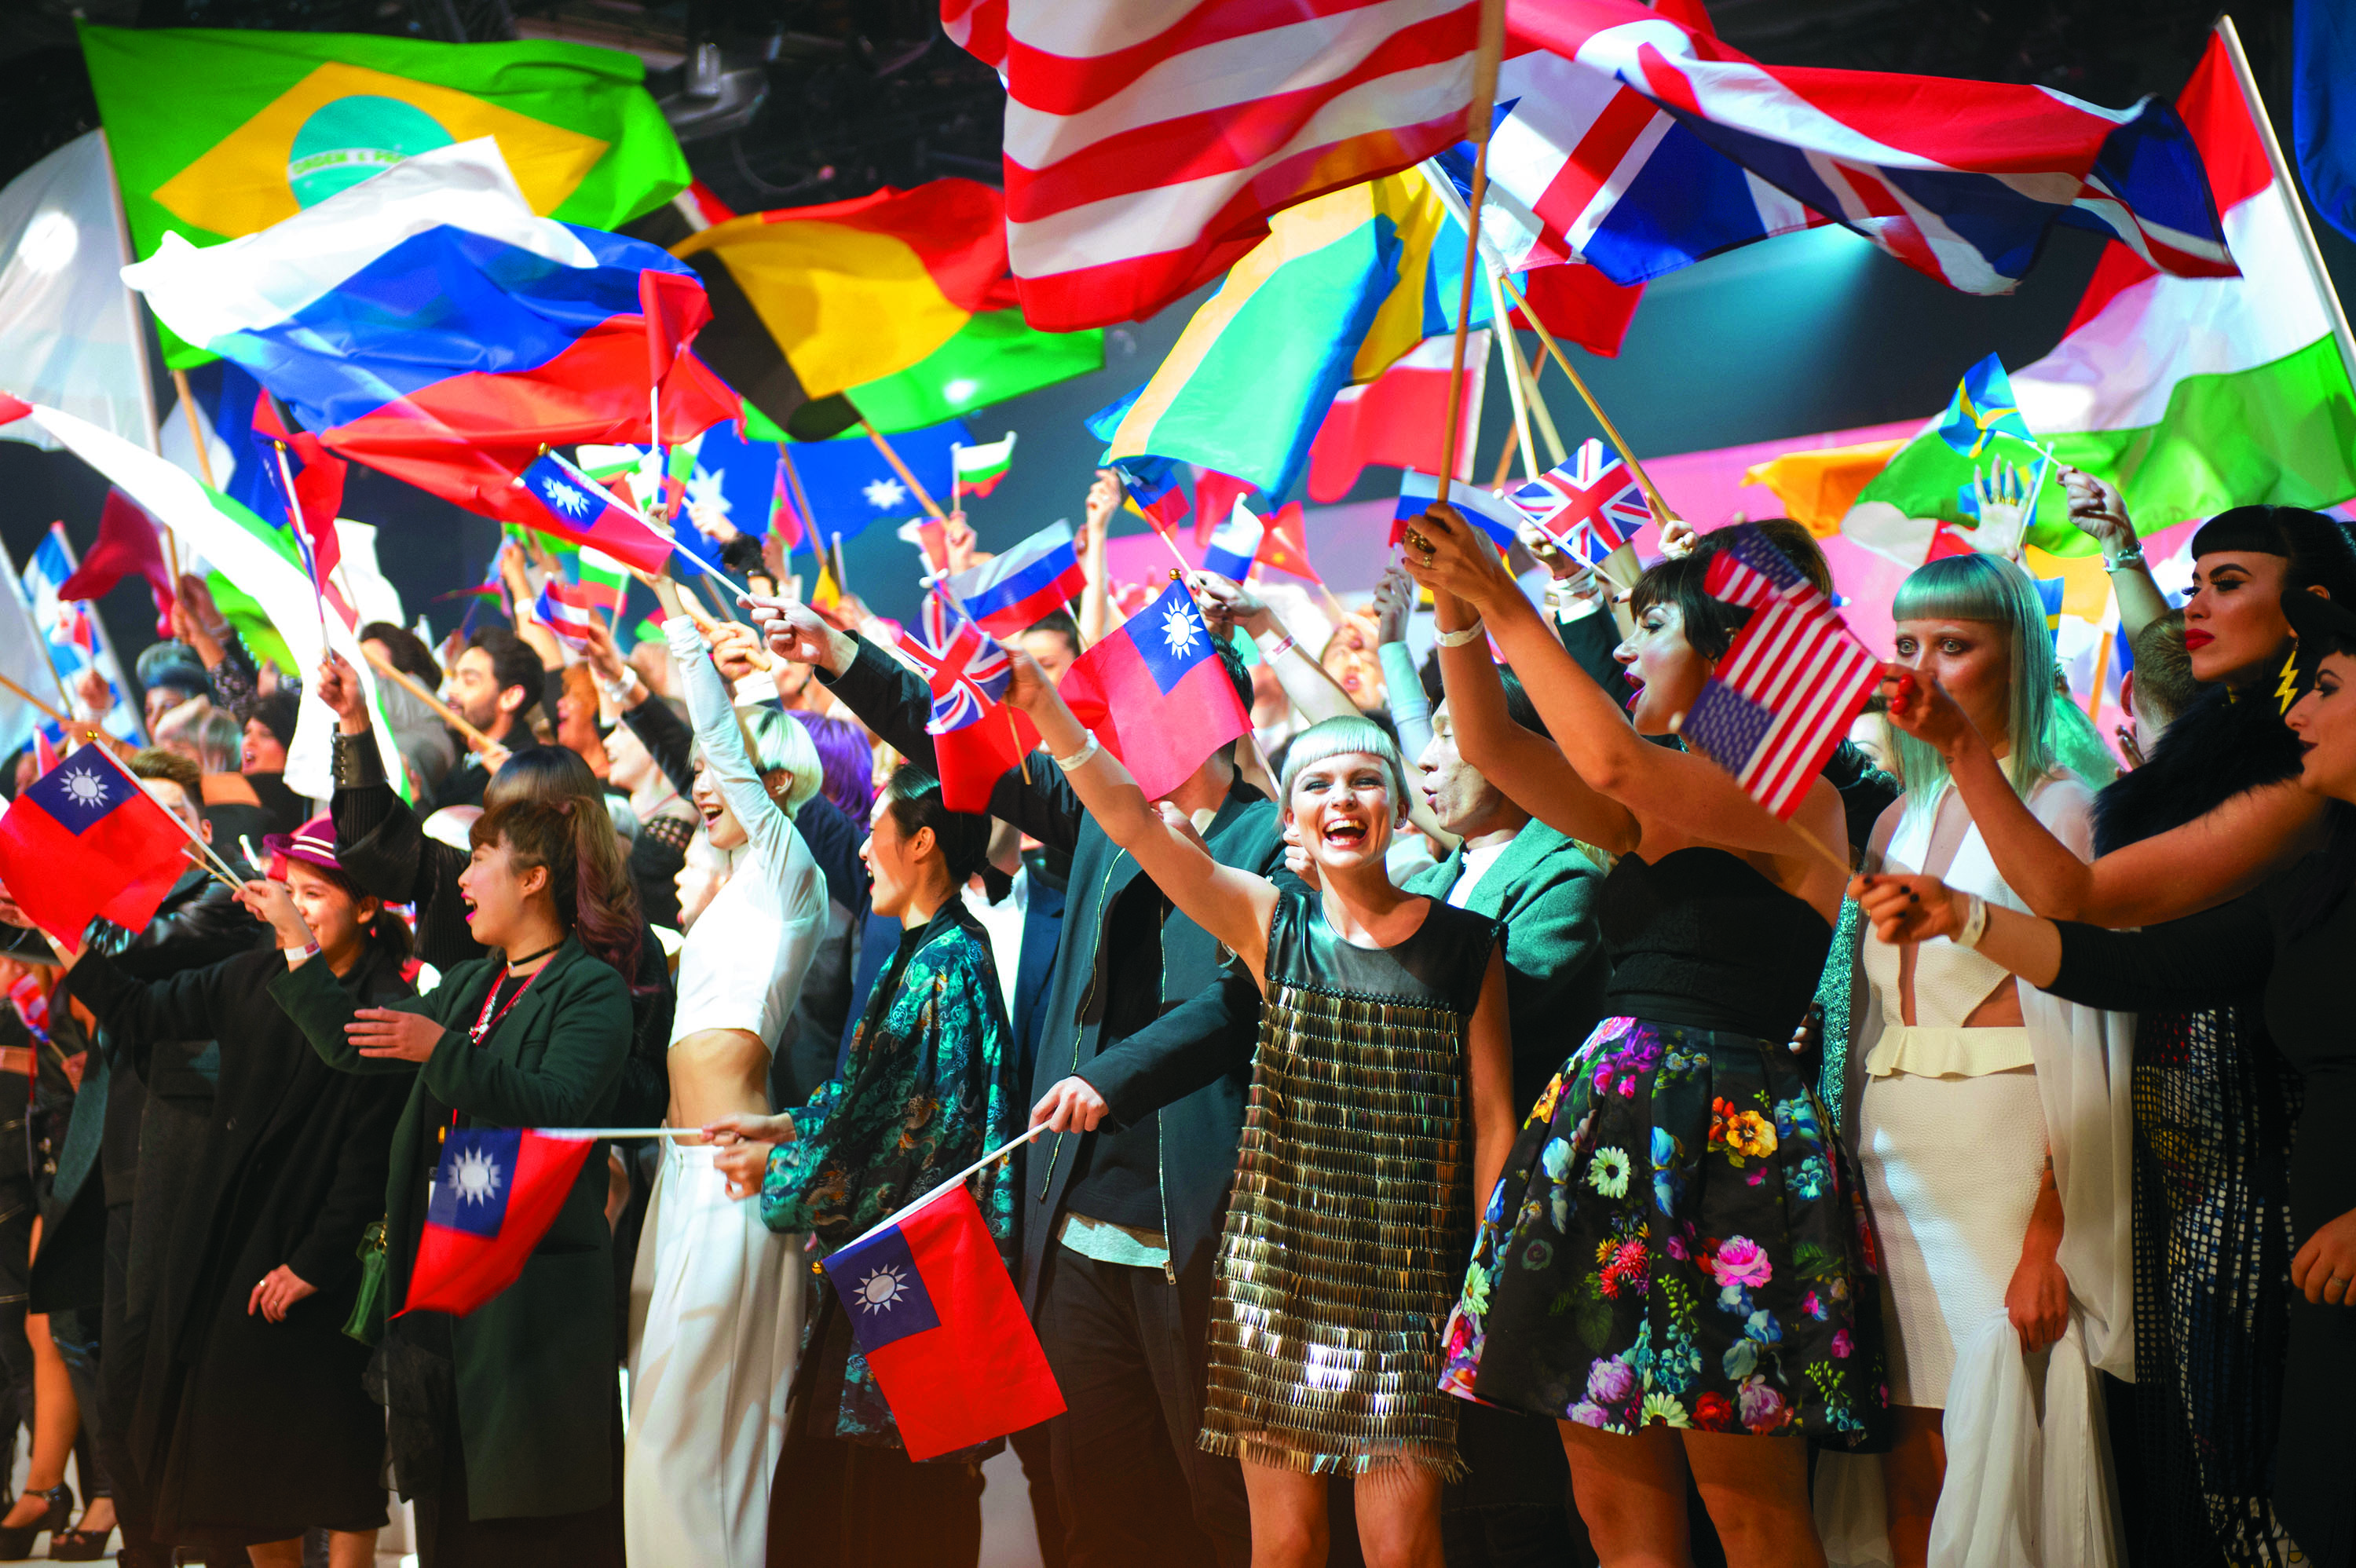 Finalists from 37 countries took part in the parade of nations.